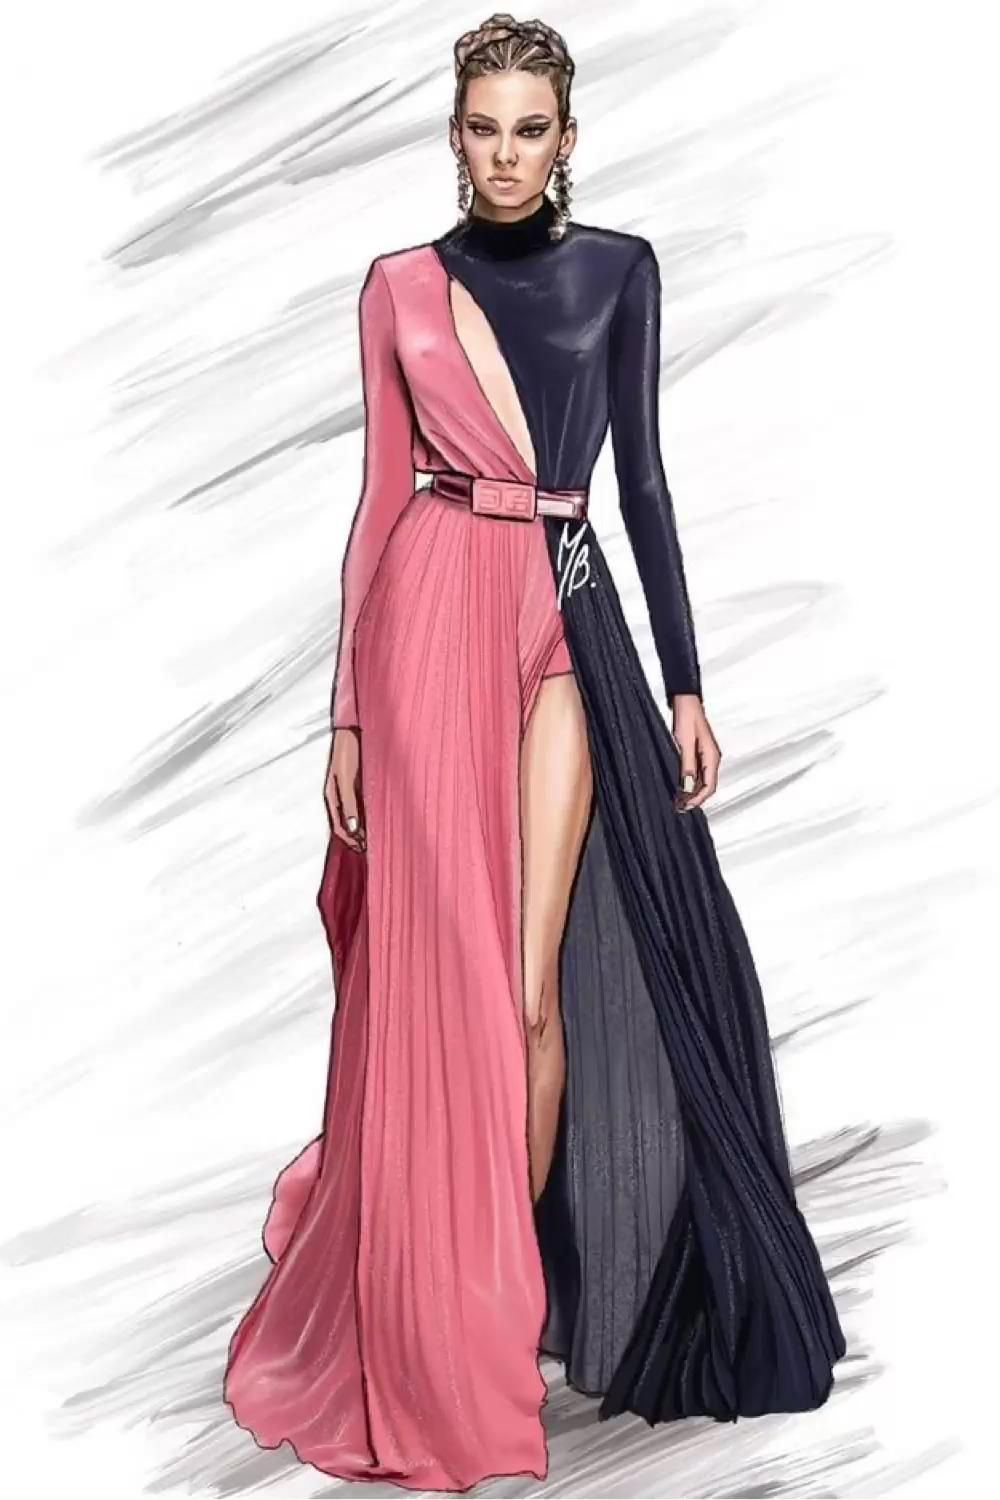 Photo of #fashionillustration #fashion #illustration #art #fashiondesigner